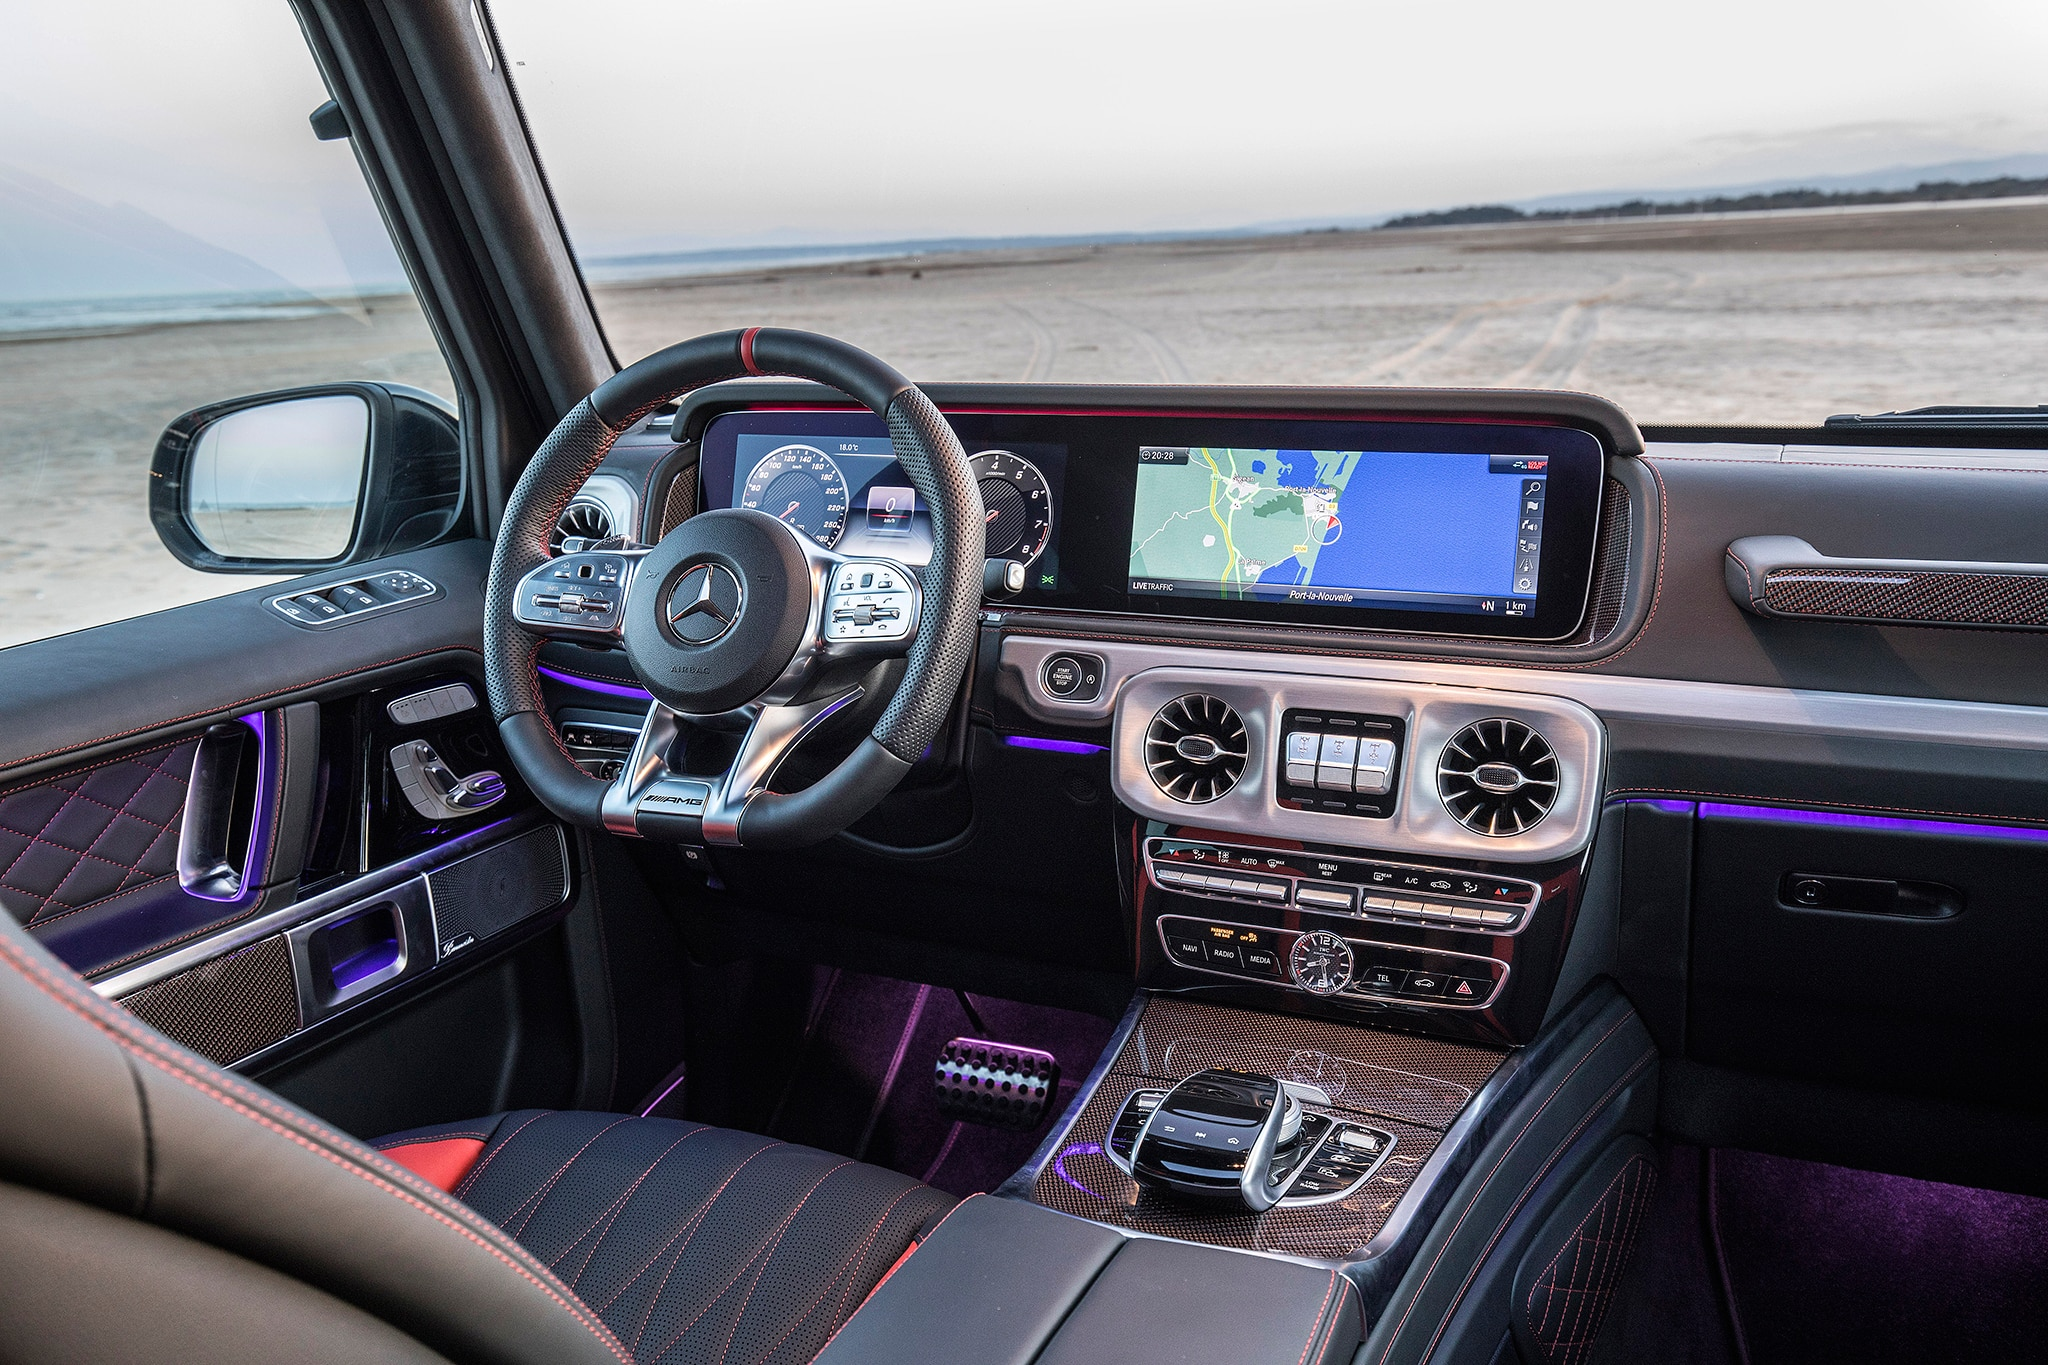 10 Interesting Things About the All-New 2019 Mercedes-Benz G-class